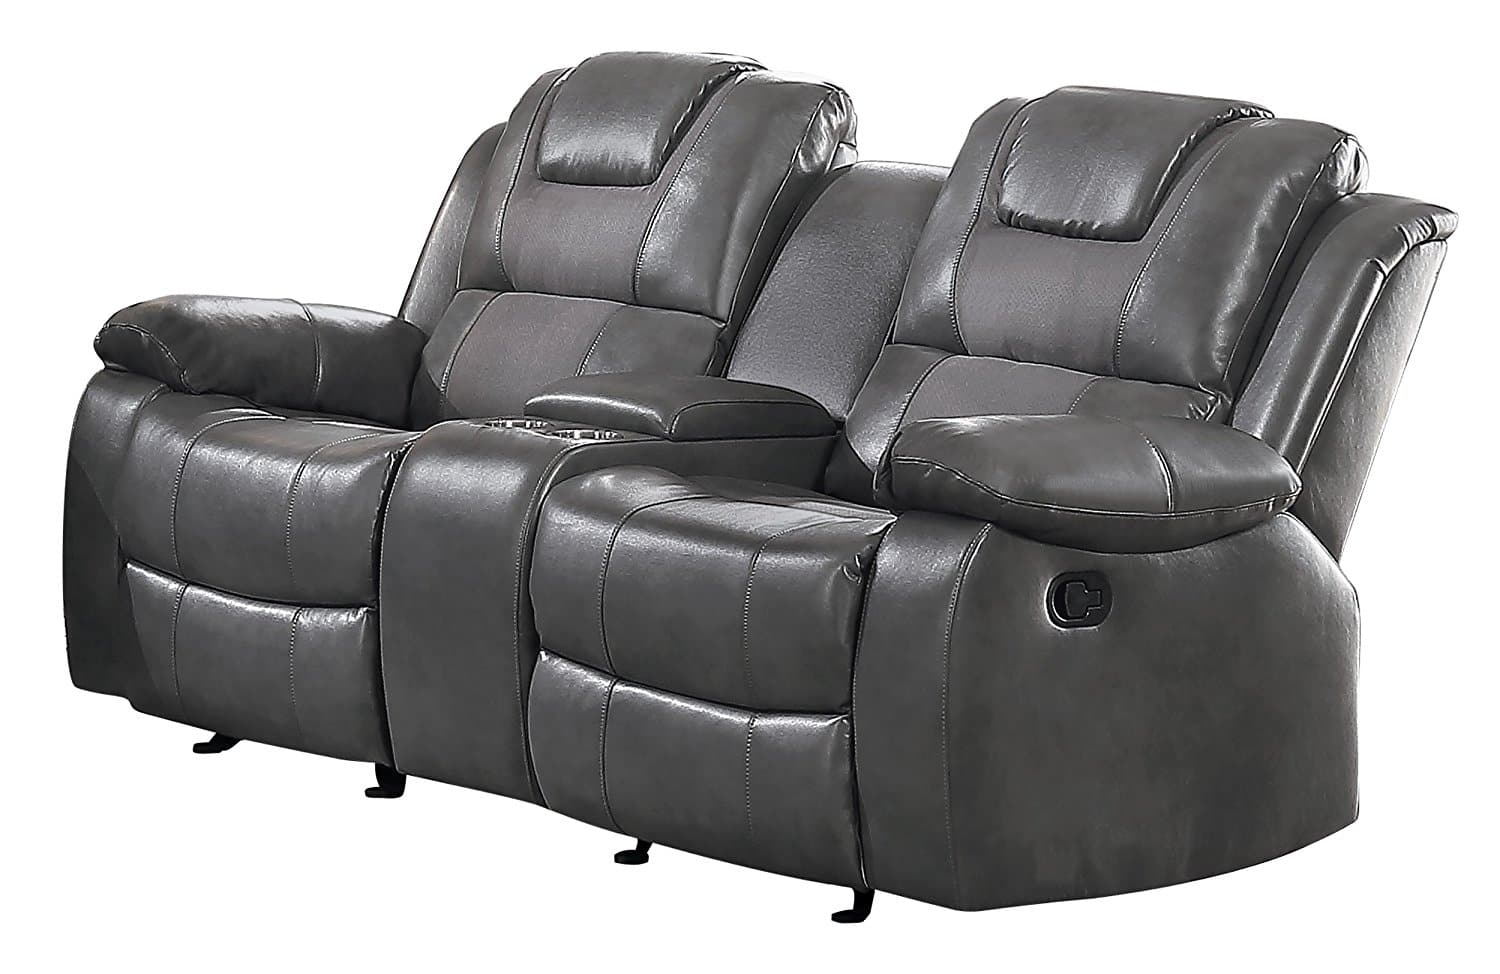 Homelegance Taye Glider Double Recliner Loveseat with Center Cup holders Storage Console Leather Gel Matched Microfiber, Grey $219.79